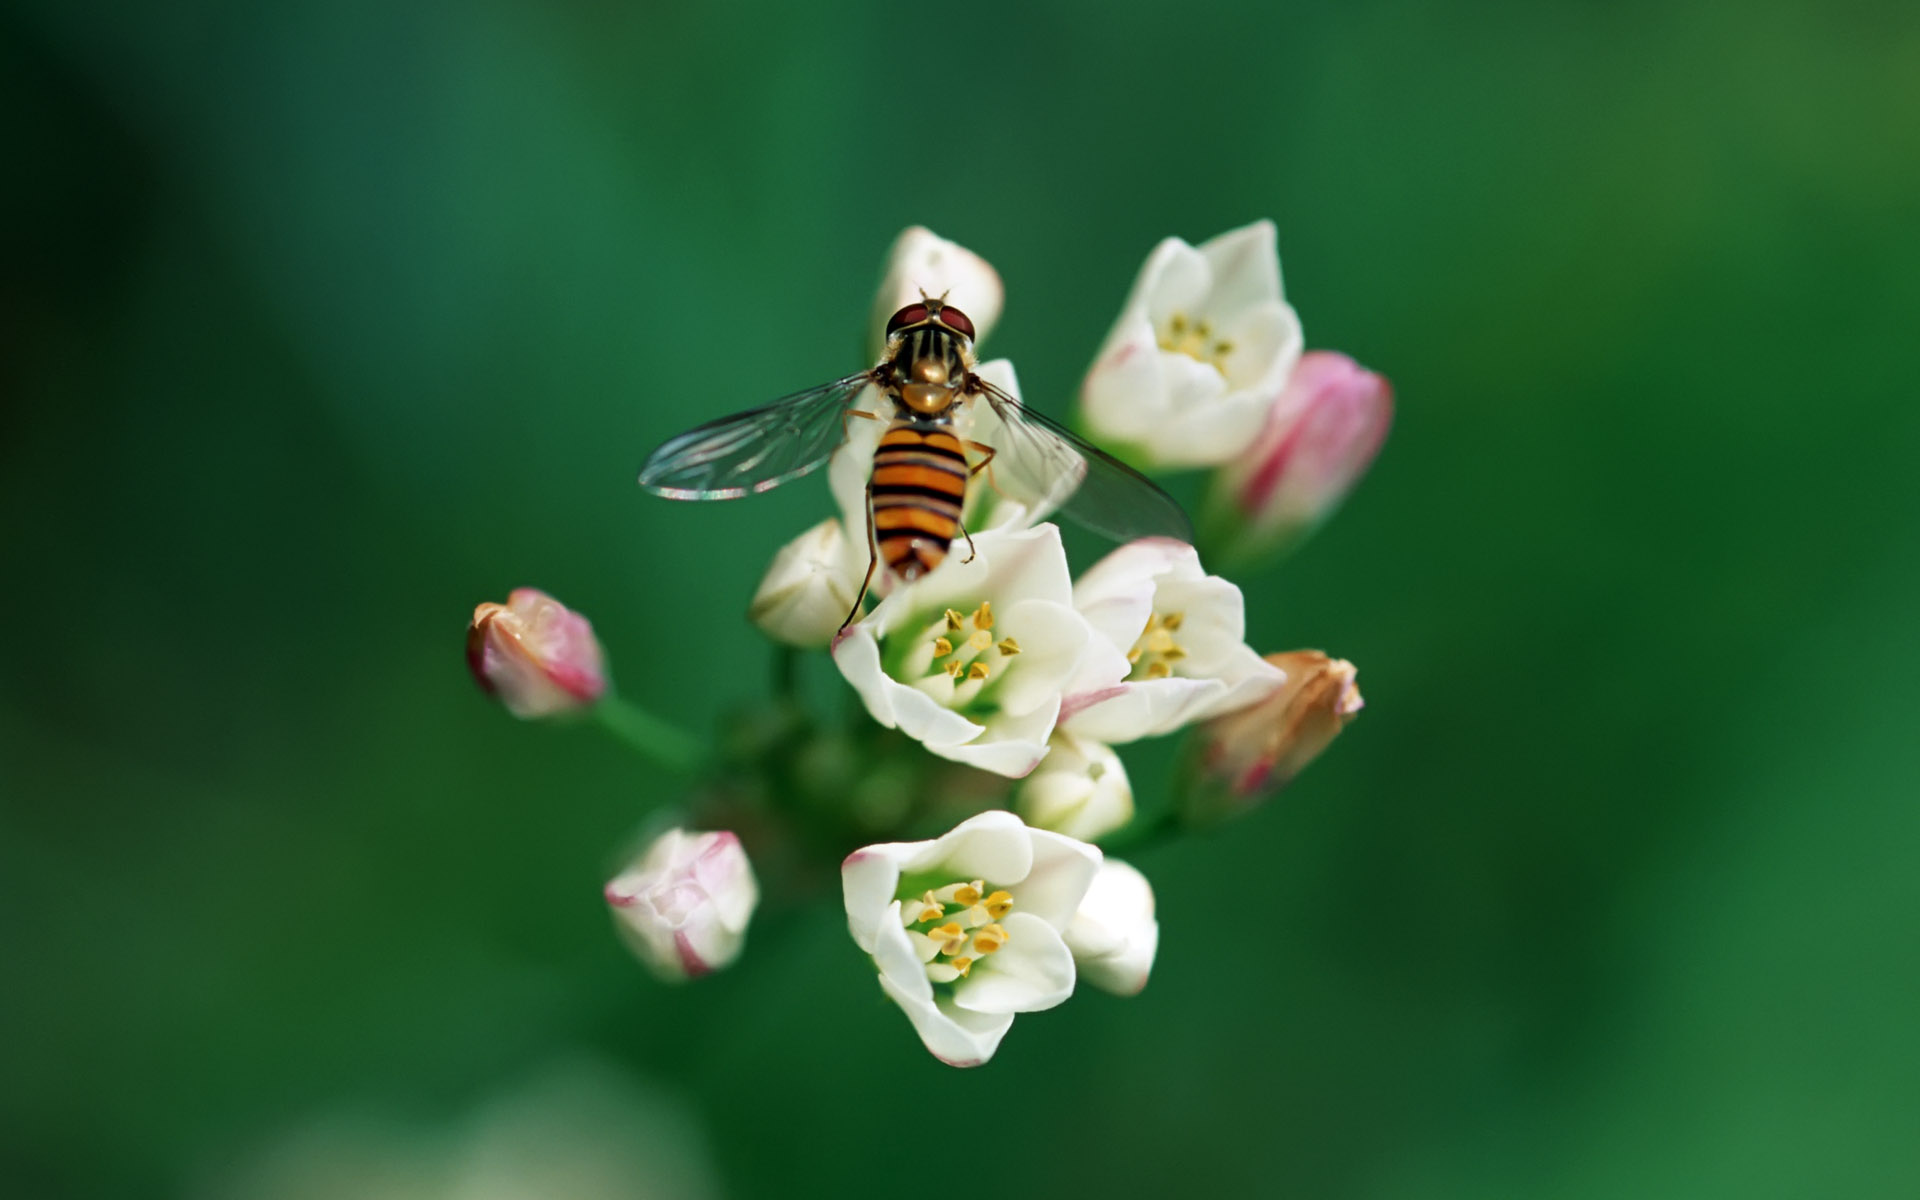 Widescreen insect photo material 1209